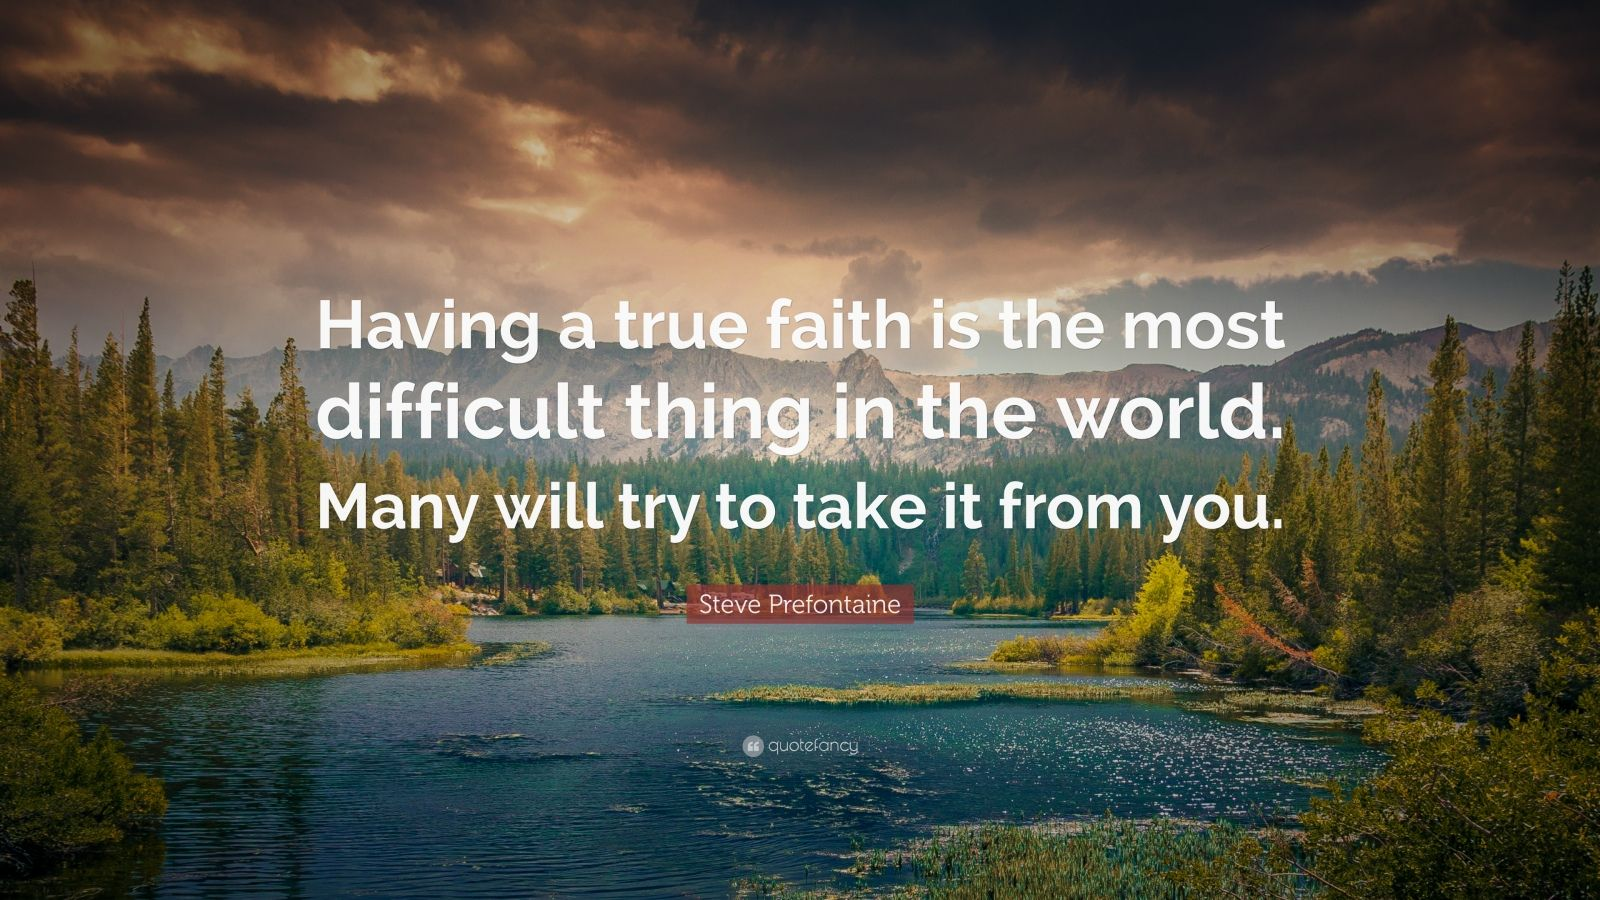 """Steve Prefontaine Quote: """"Having a true faith is the most difficult thing in the world. Many will try to take it from you."""""""